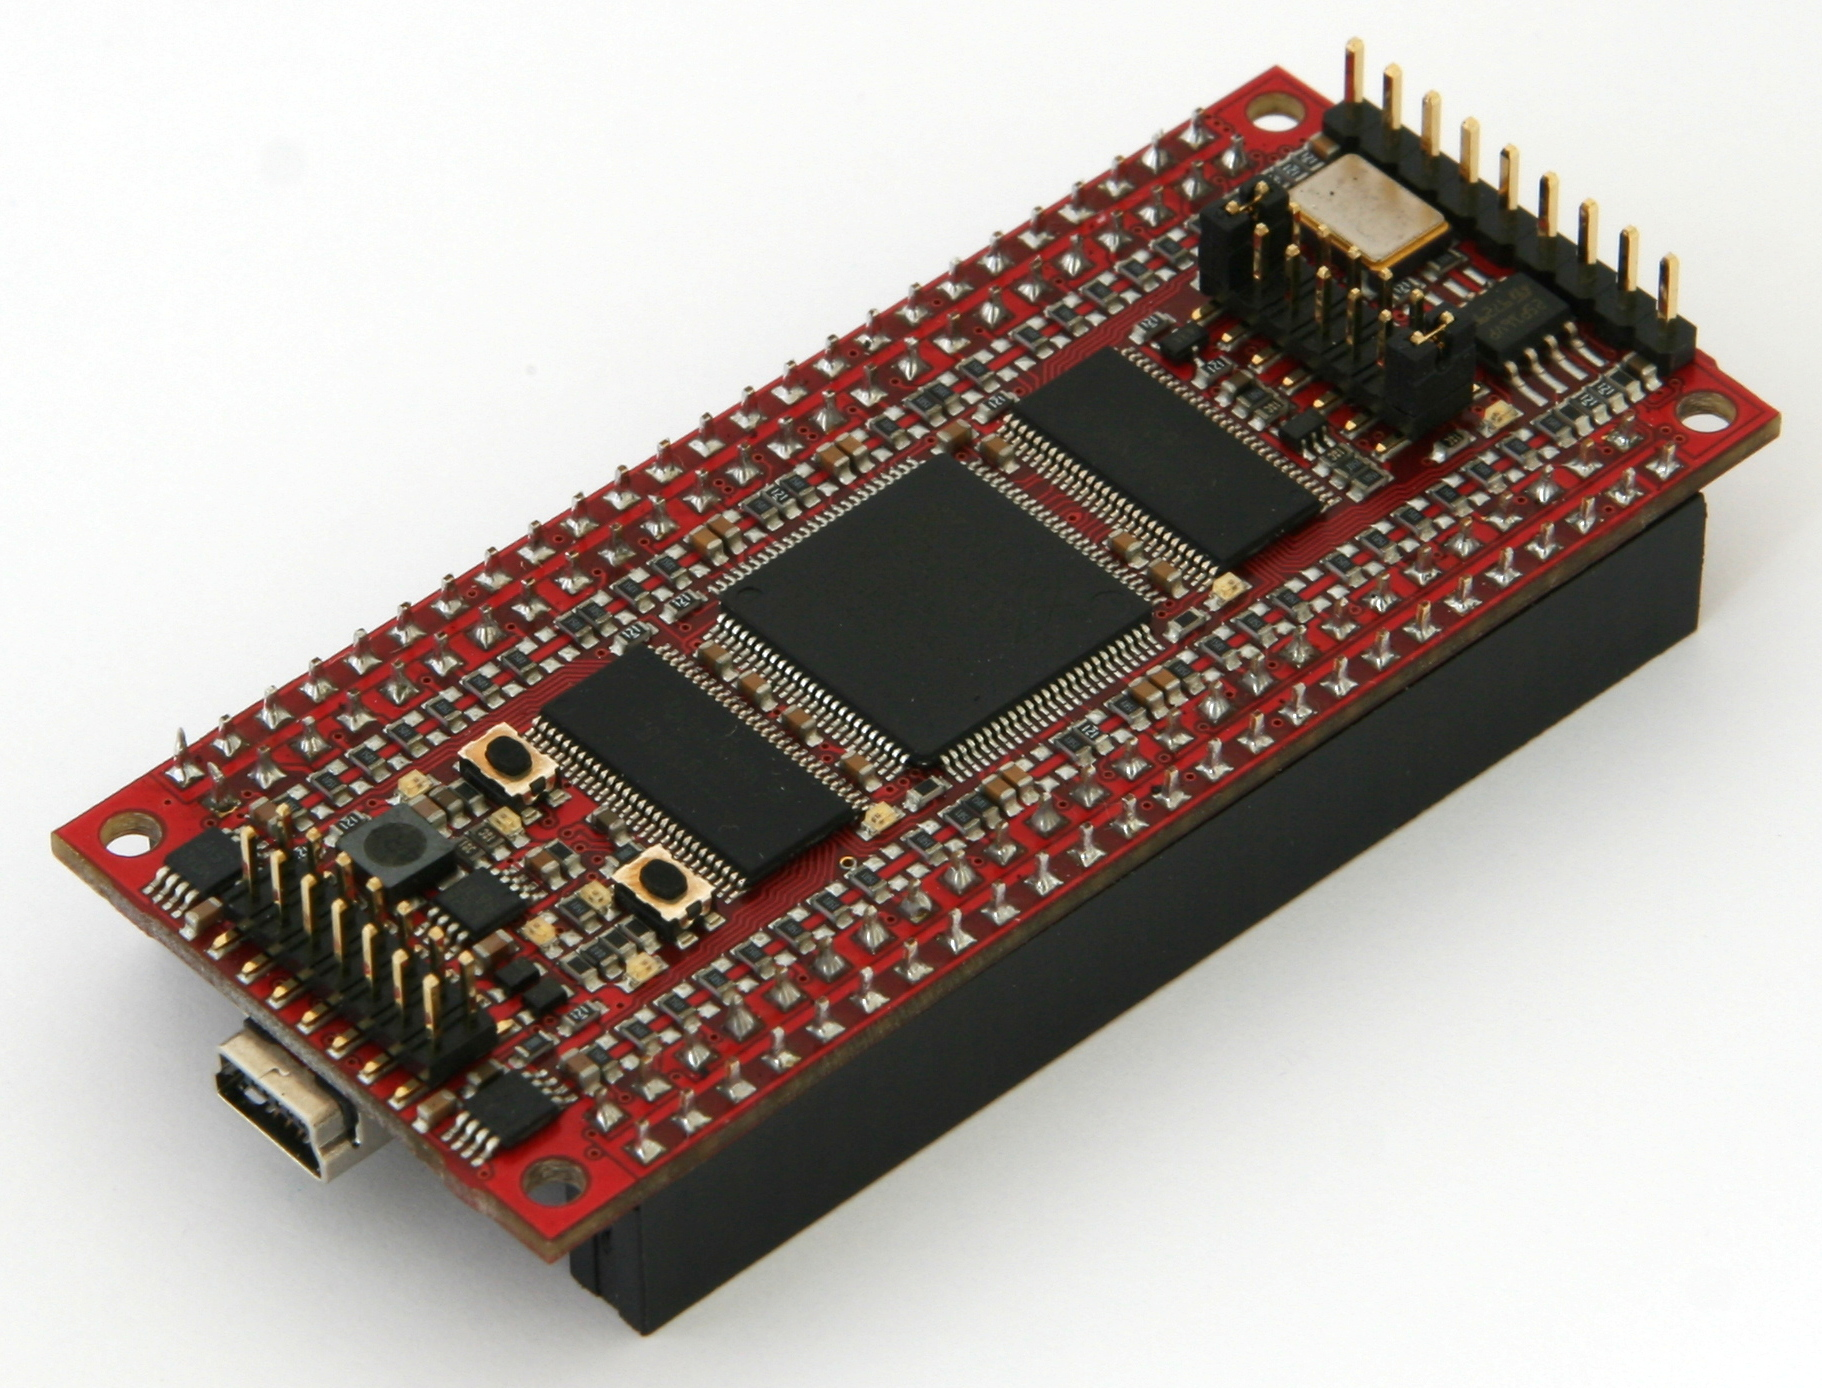 Spartan 6 Fpga Sp605 Evaluation Kit Trenz Electronic Gmbh Online Usb To Serial Port Controller Tusb3410 Integrated Circuit Components Godil50 Xc3s250etopold1